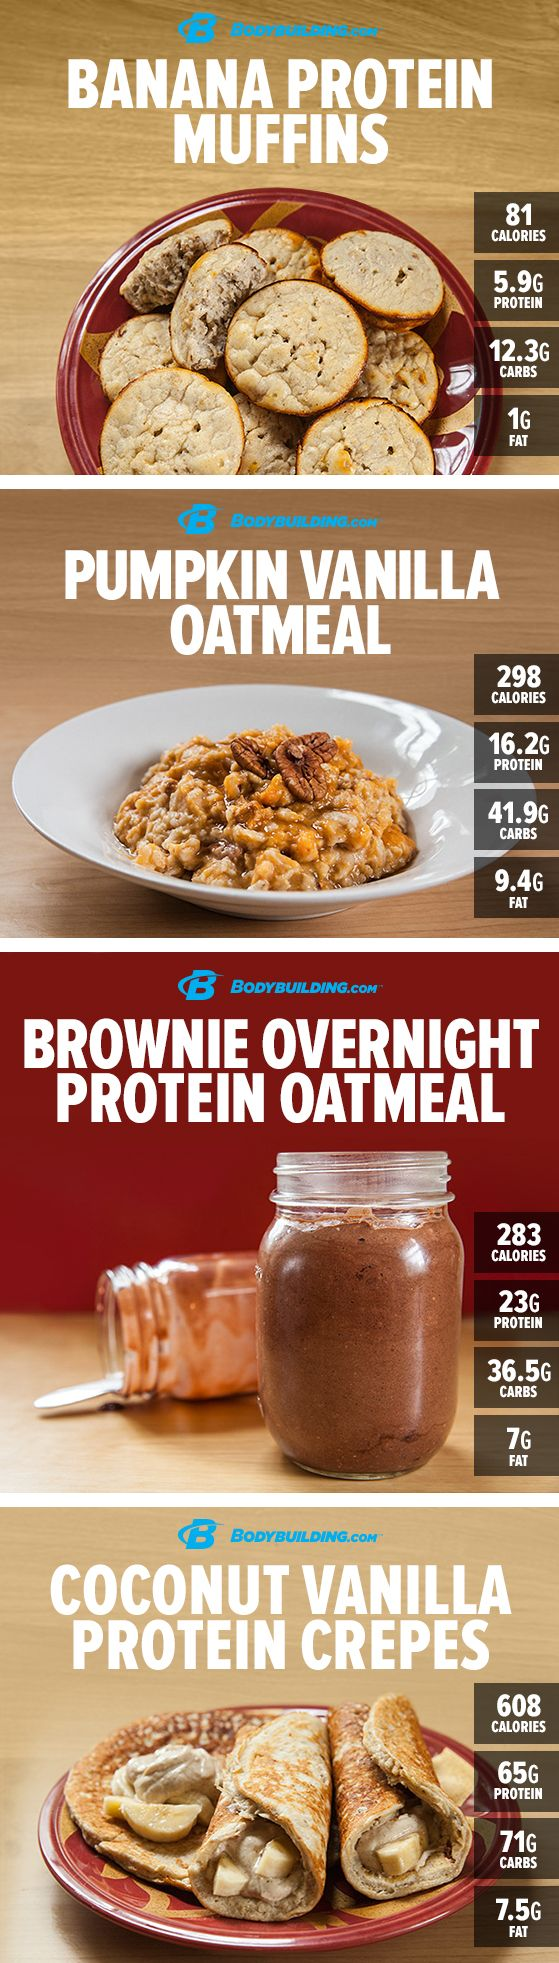 8 High-Protein Breakfasts You Must Try! Throw away your alarm clock and toss out your bland morning shake. These 8 protein-rich breakfast recipes are so good they'll be enough to get you up and going!